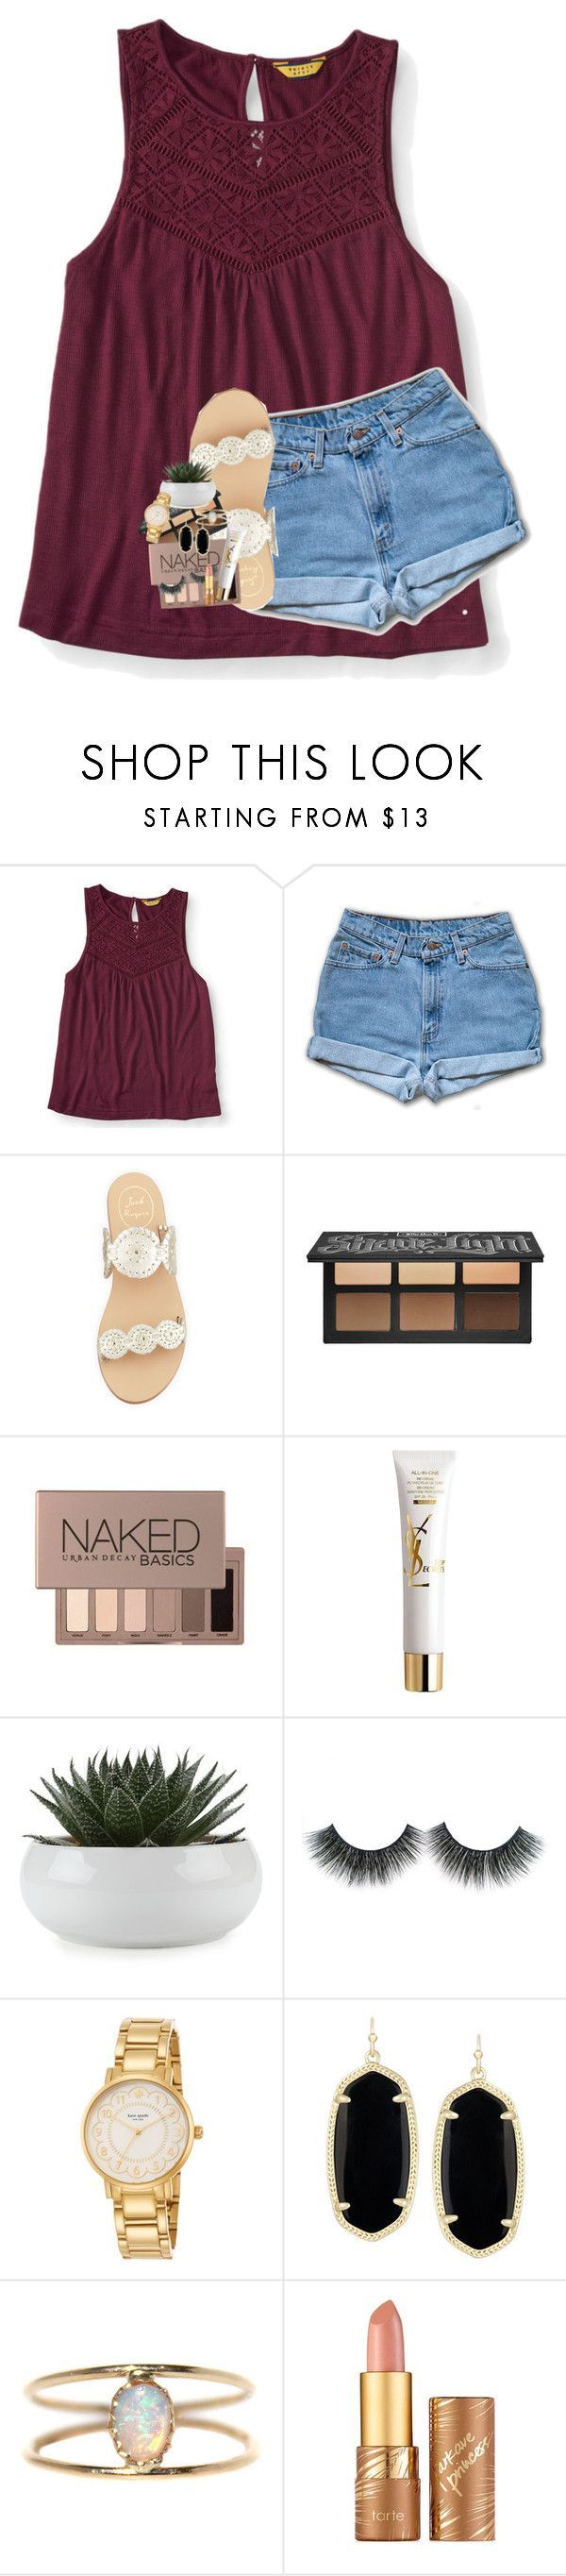 """2K!!"" by lindsaygreys ❤ liked on Polyvore featuring Aéropostale, Jack Rogers, Kat Von D, Urban Decay, Yves Saint Laurent, Kate Spade, Kendra Scott, LUMO and tarte"